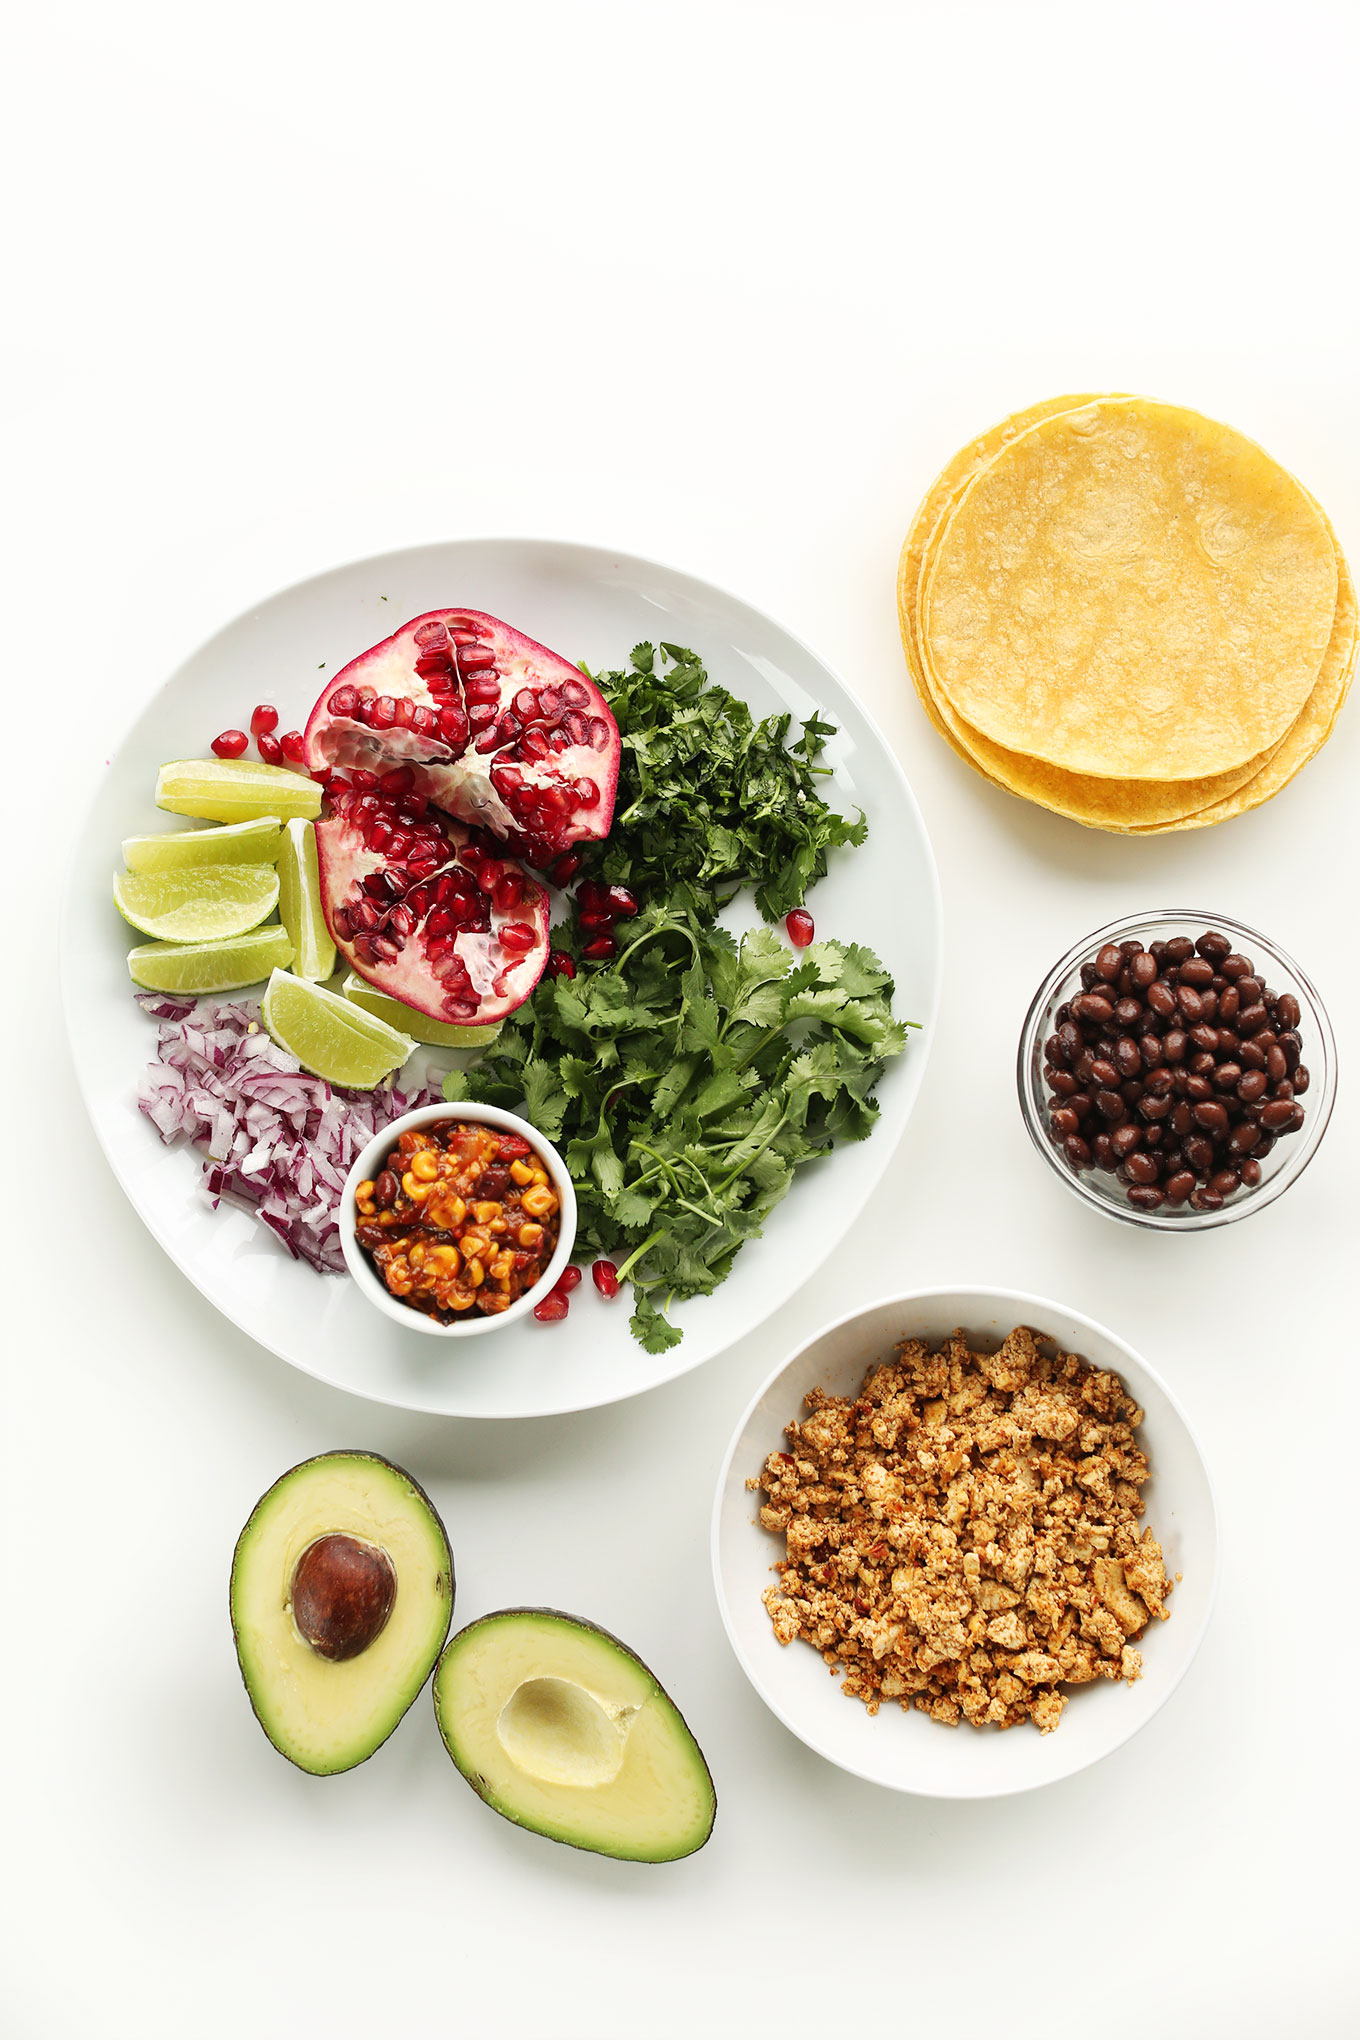 Ingredients for making Vegan Breakfast Tacos